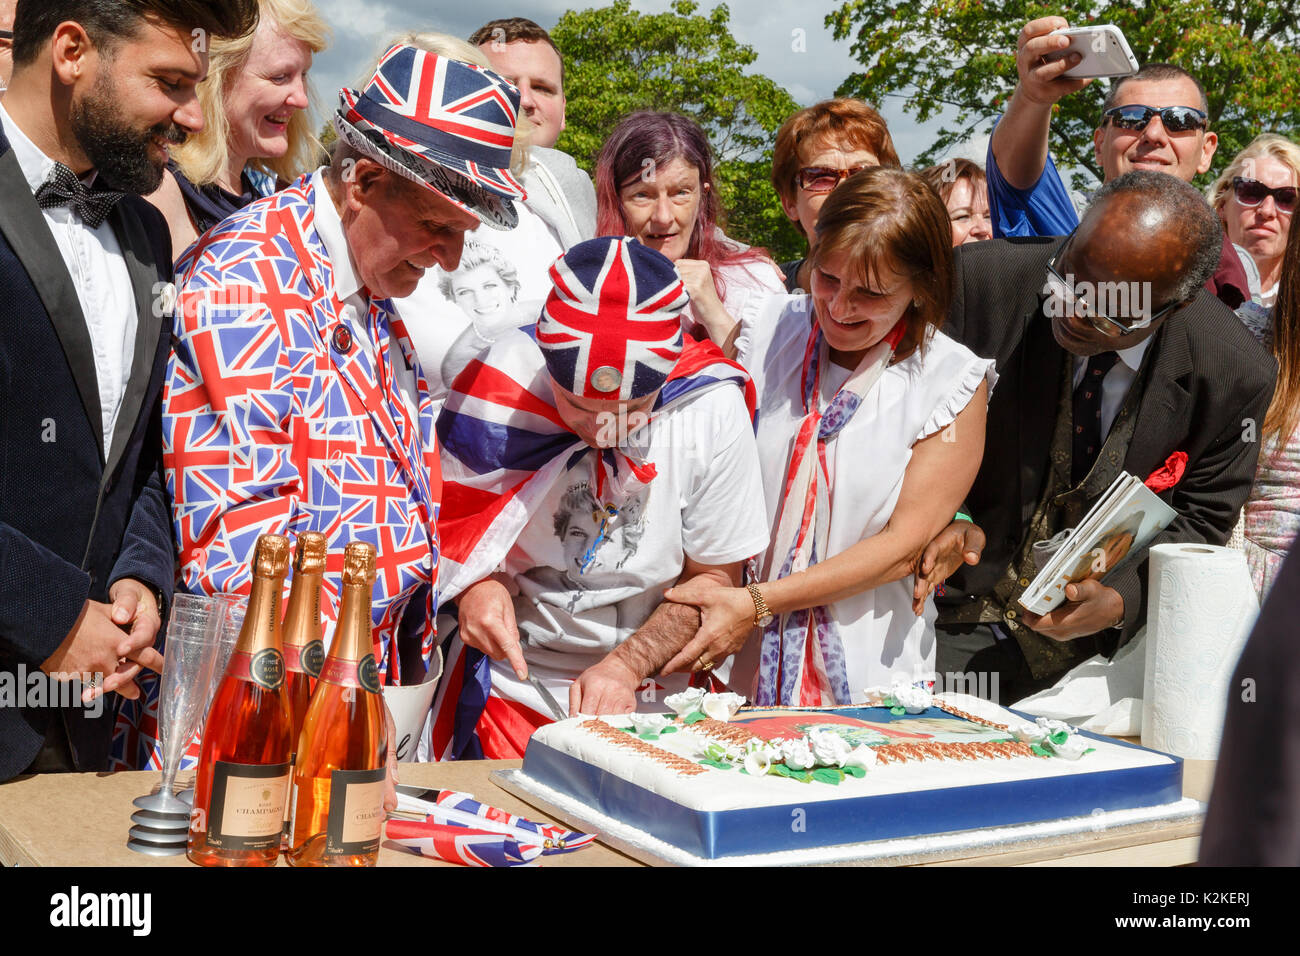 London, UK. 31st Aug, 2017. Superfans Terry Hutt looks on as John Loughrey cuts a memorial cake in memory of Princess Stock Photo